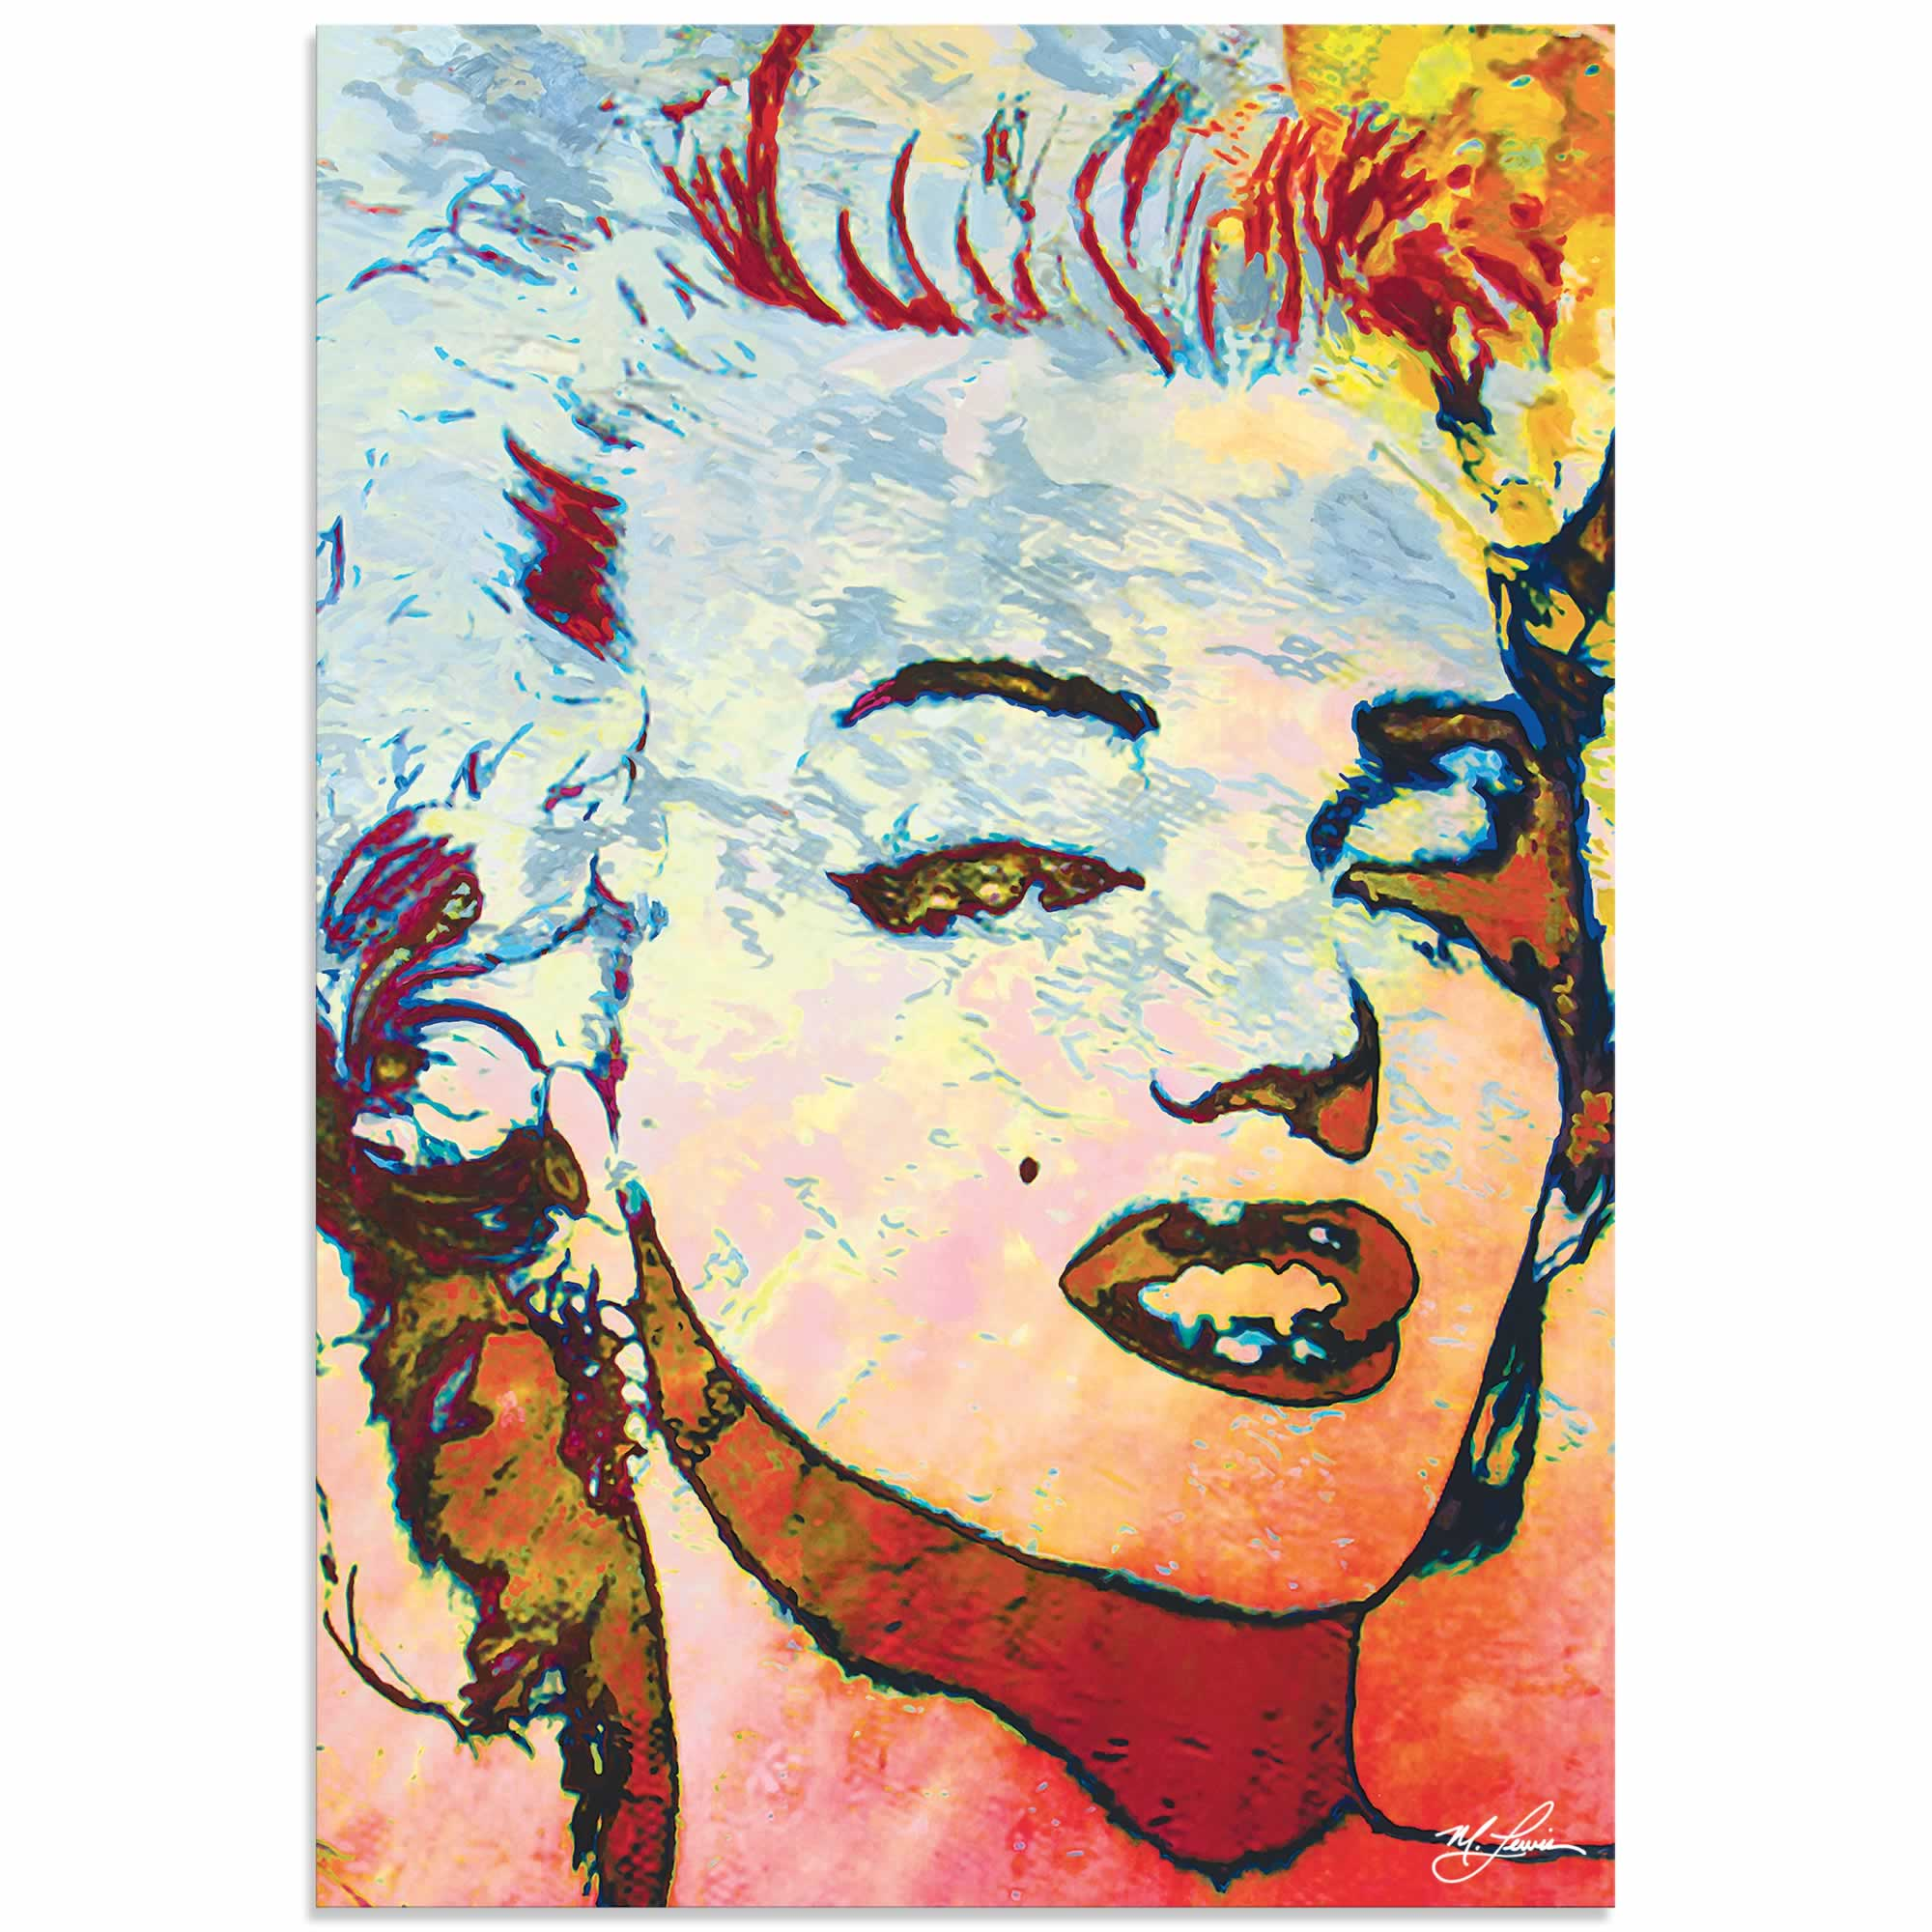 Marilyn Monroe Red | Pop Art Painting by Mark Lewis, Signed & Numbered Limited Edition - ML0024